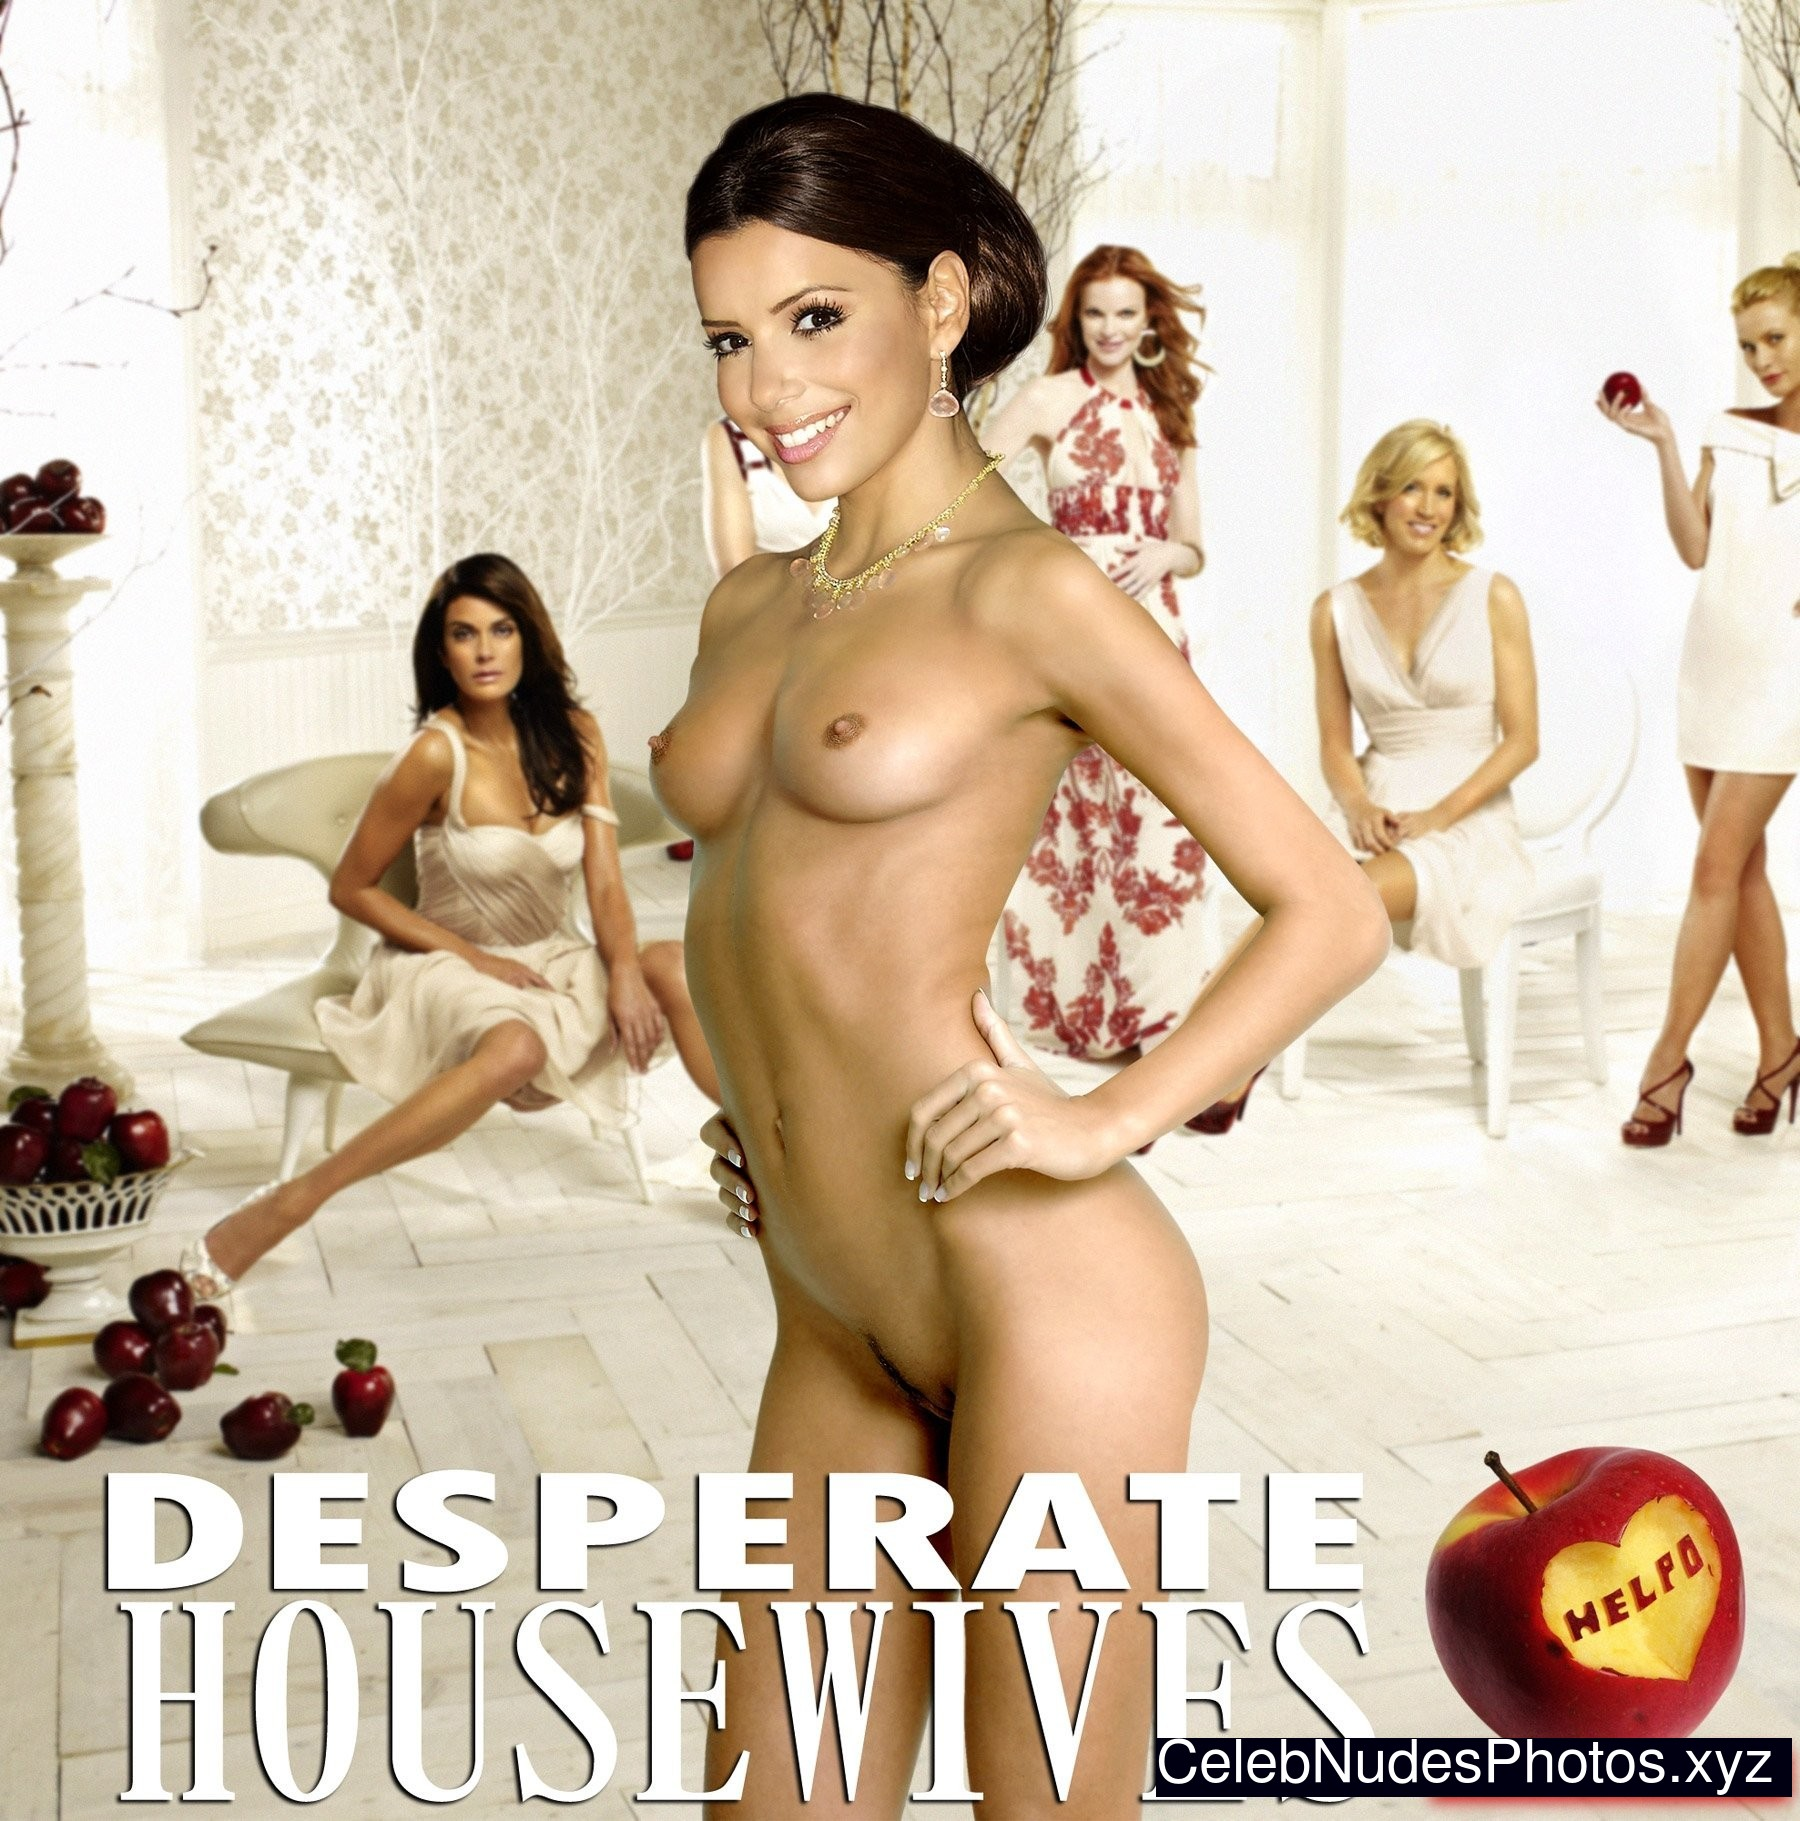 Has come eva longoria desperate housewives fakes completely